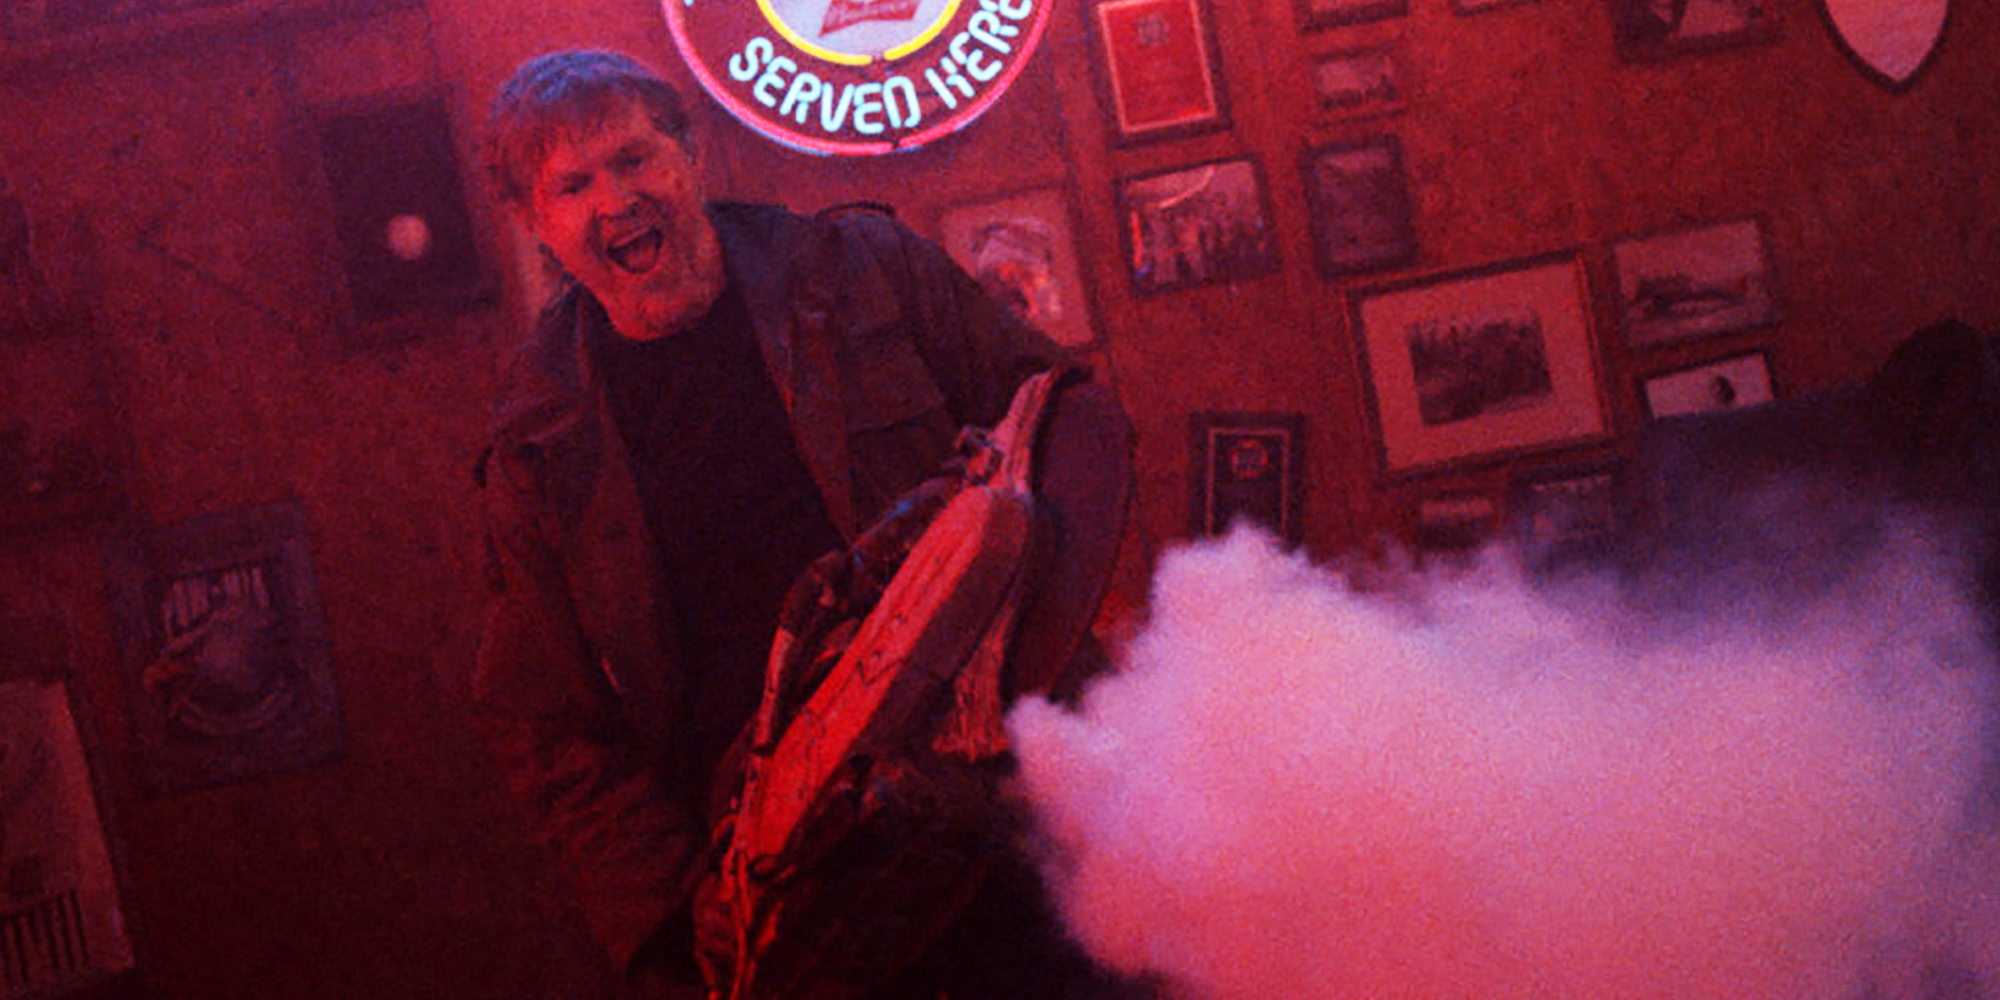 This image of  William Sadler  with a saw about to kick some mutant, punk ass is LIFE!!